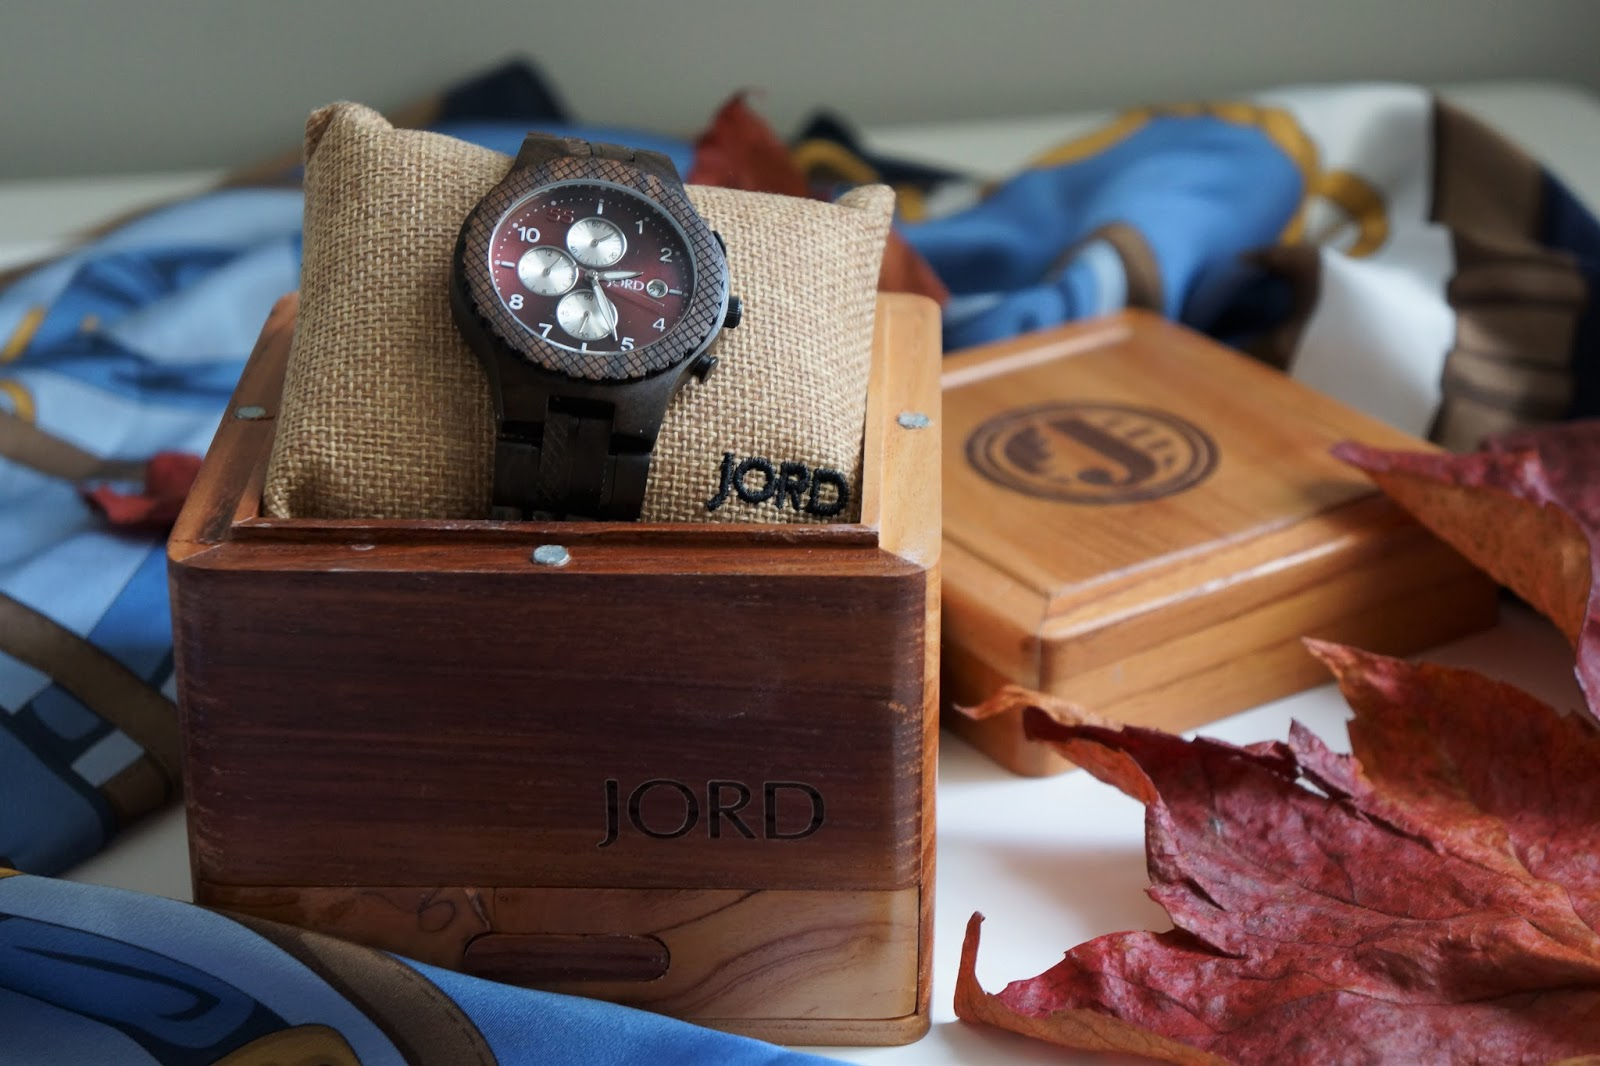 JORD men's wooden watch with dark sandalwood in a box with a blue scarf and red leaves behind it